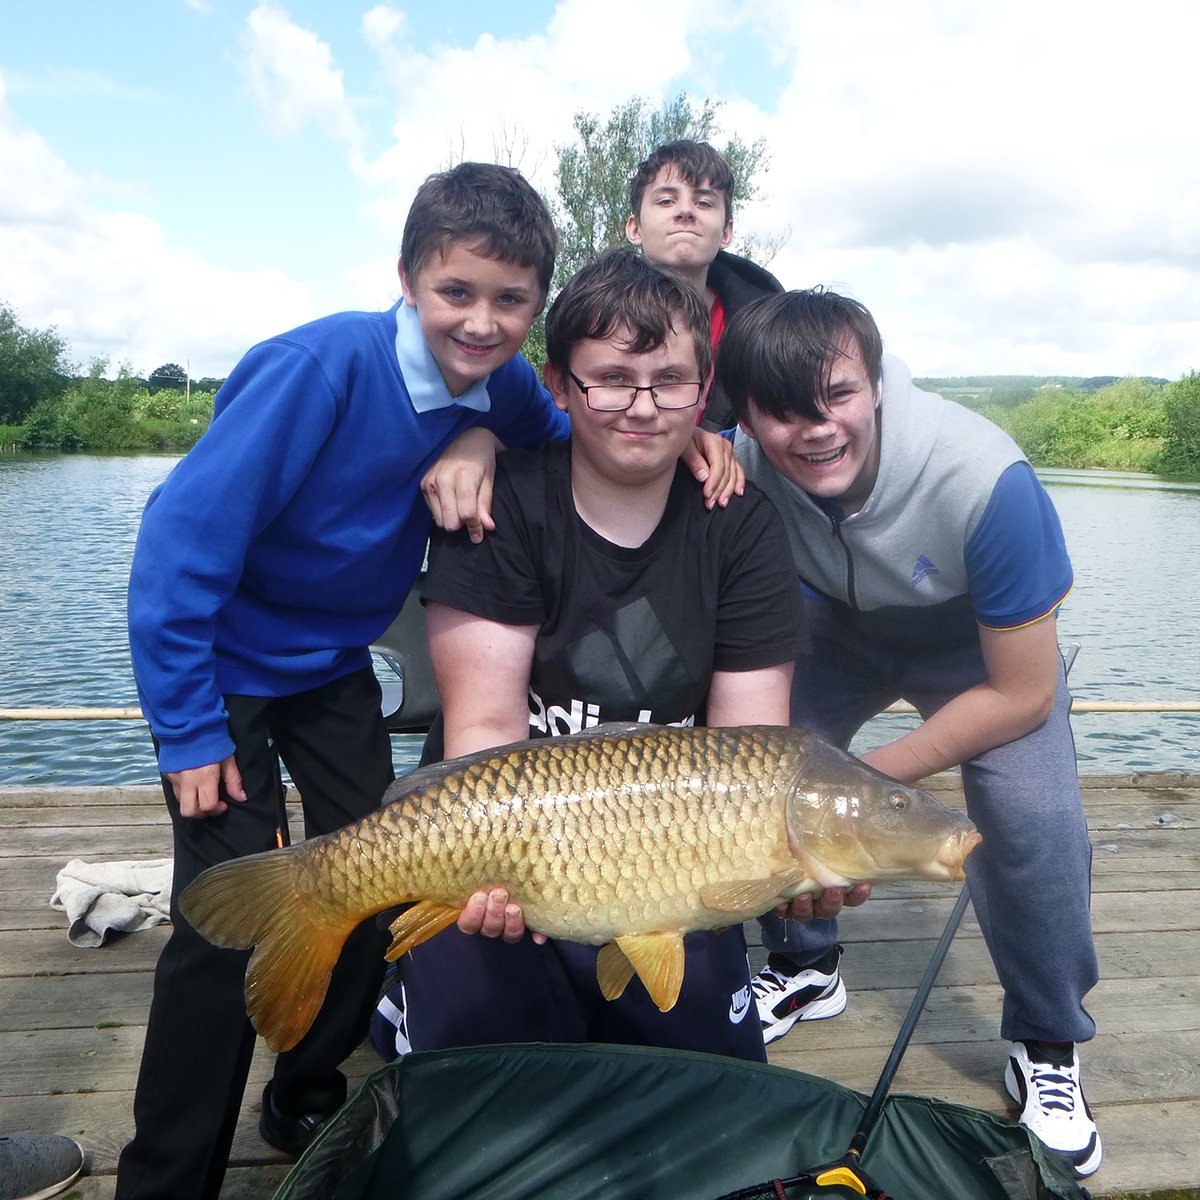 Yesterday I was working with an ex student to progress in the Cast Awards, a course run by the @AnglingTrust Although fishing is now permitted we must remember that for most schools are still shut, which isnt easy. Fishing for Schools Coach, Warren. #fishingforschools